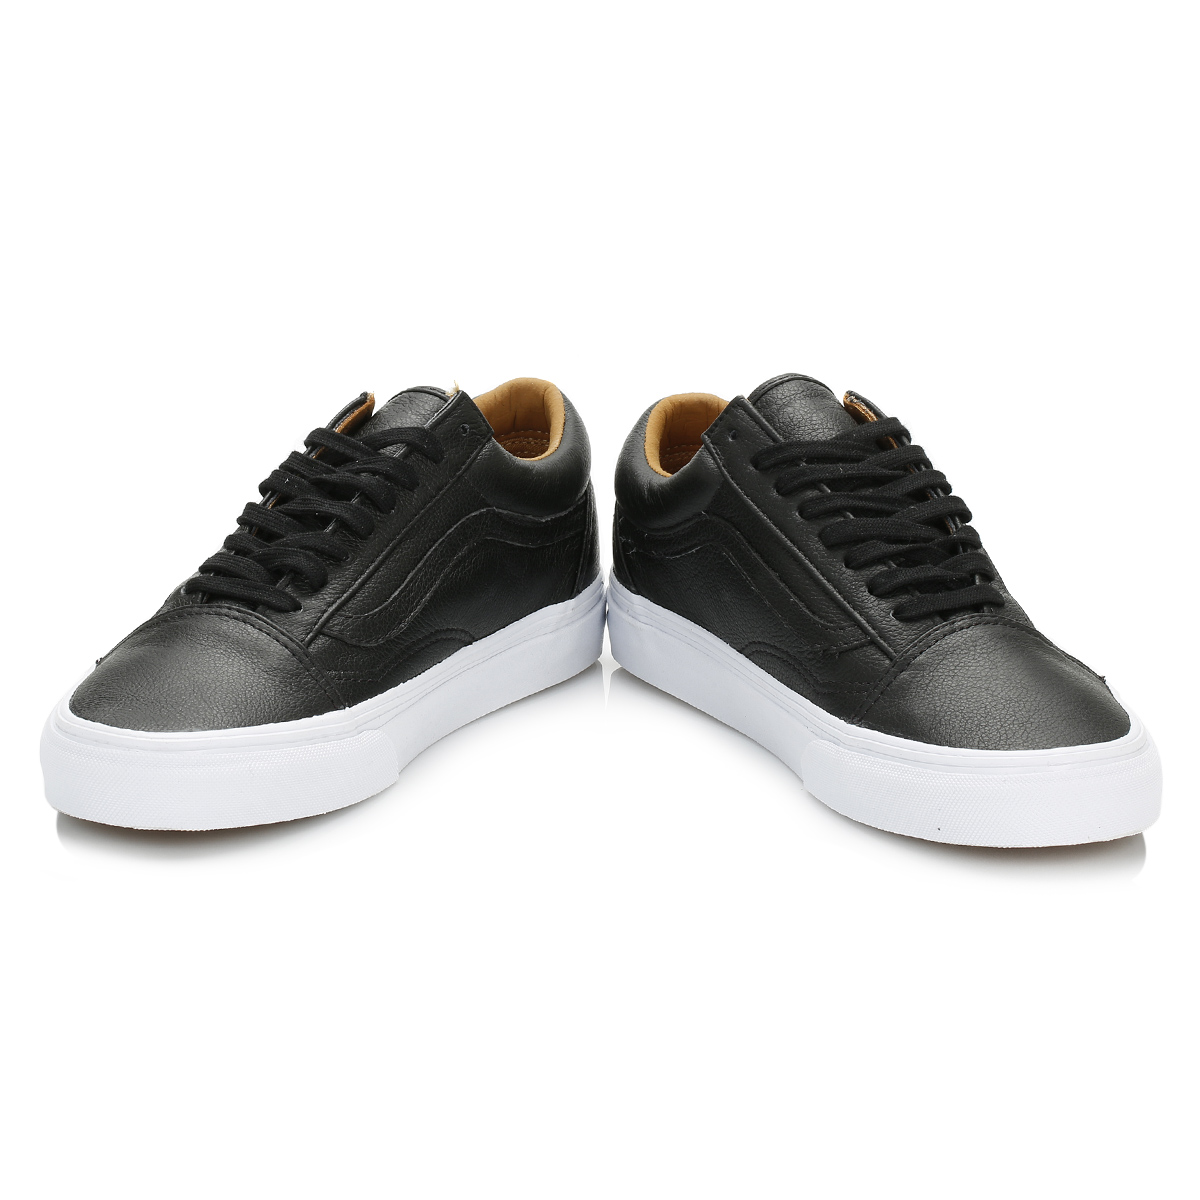 Men Vans Old Skool Premium Leather Trainers Black White